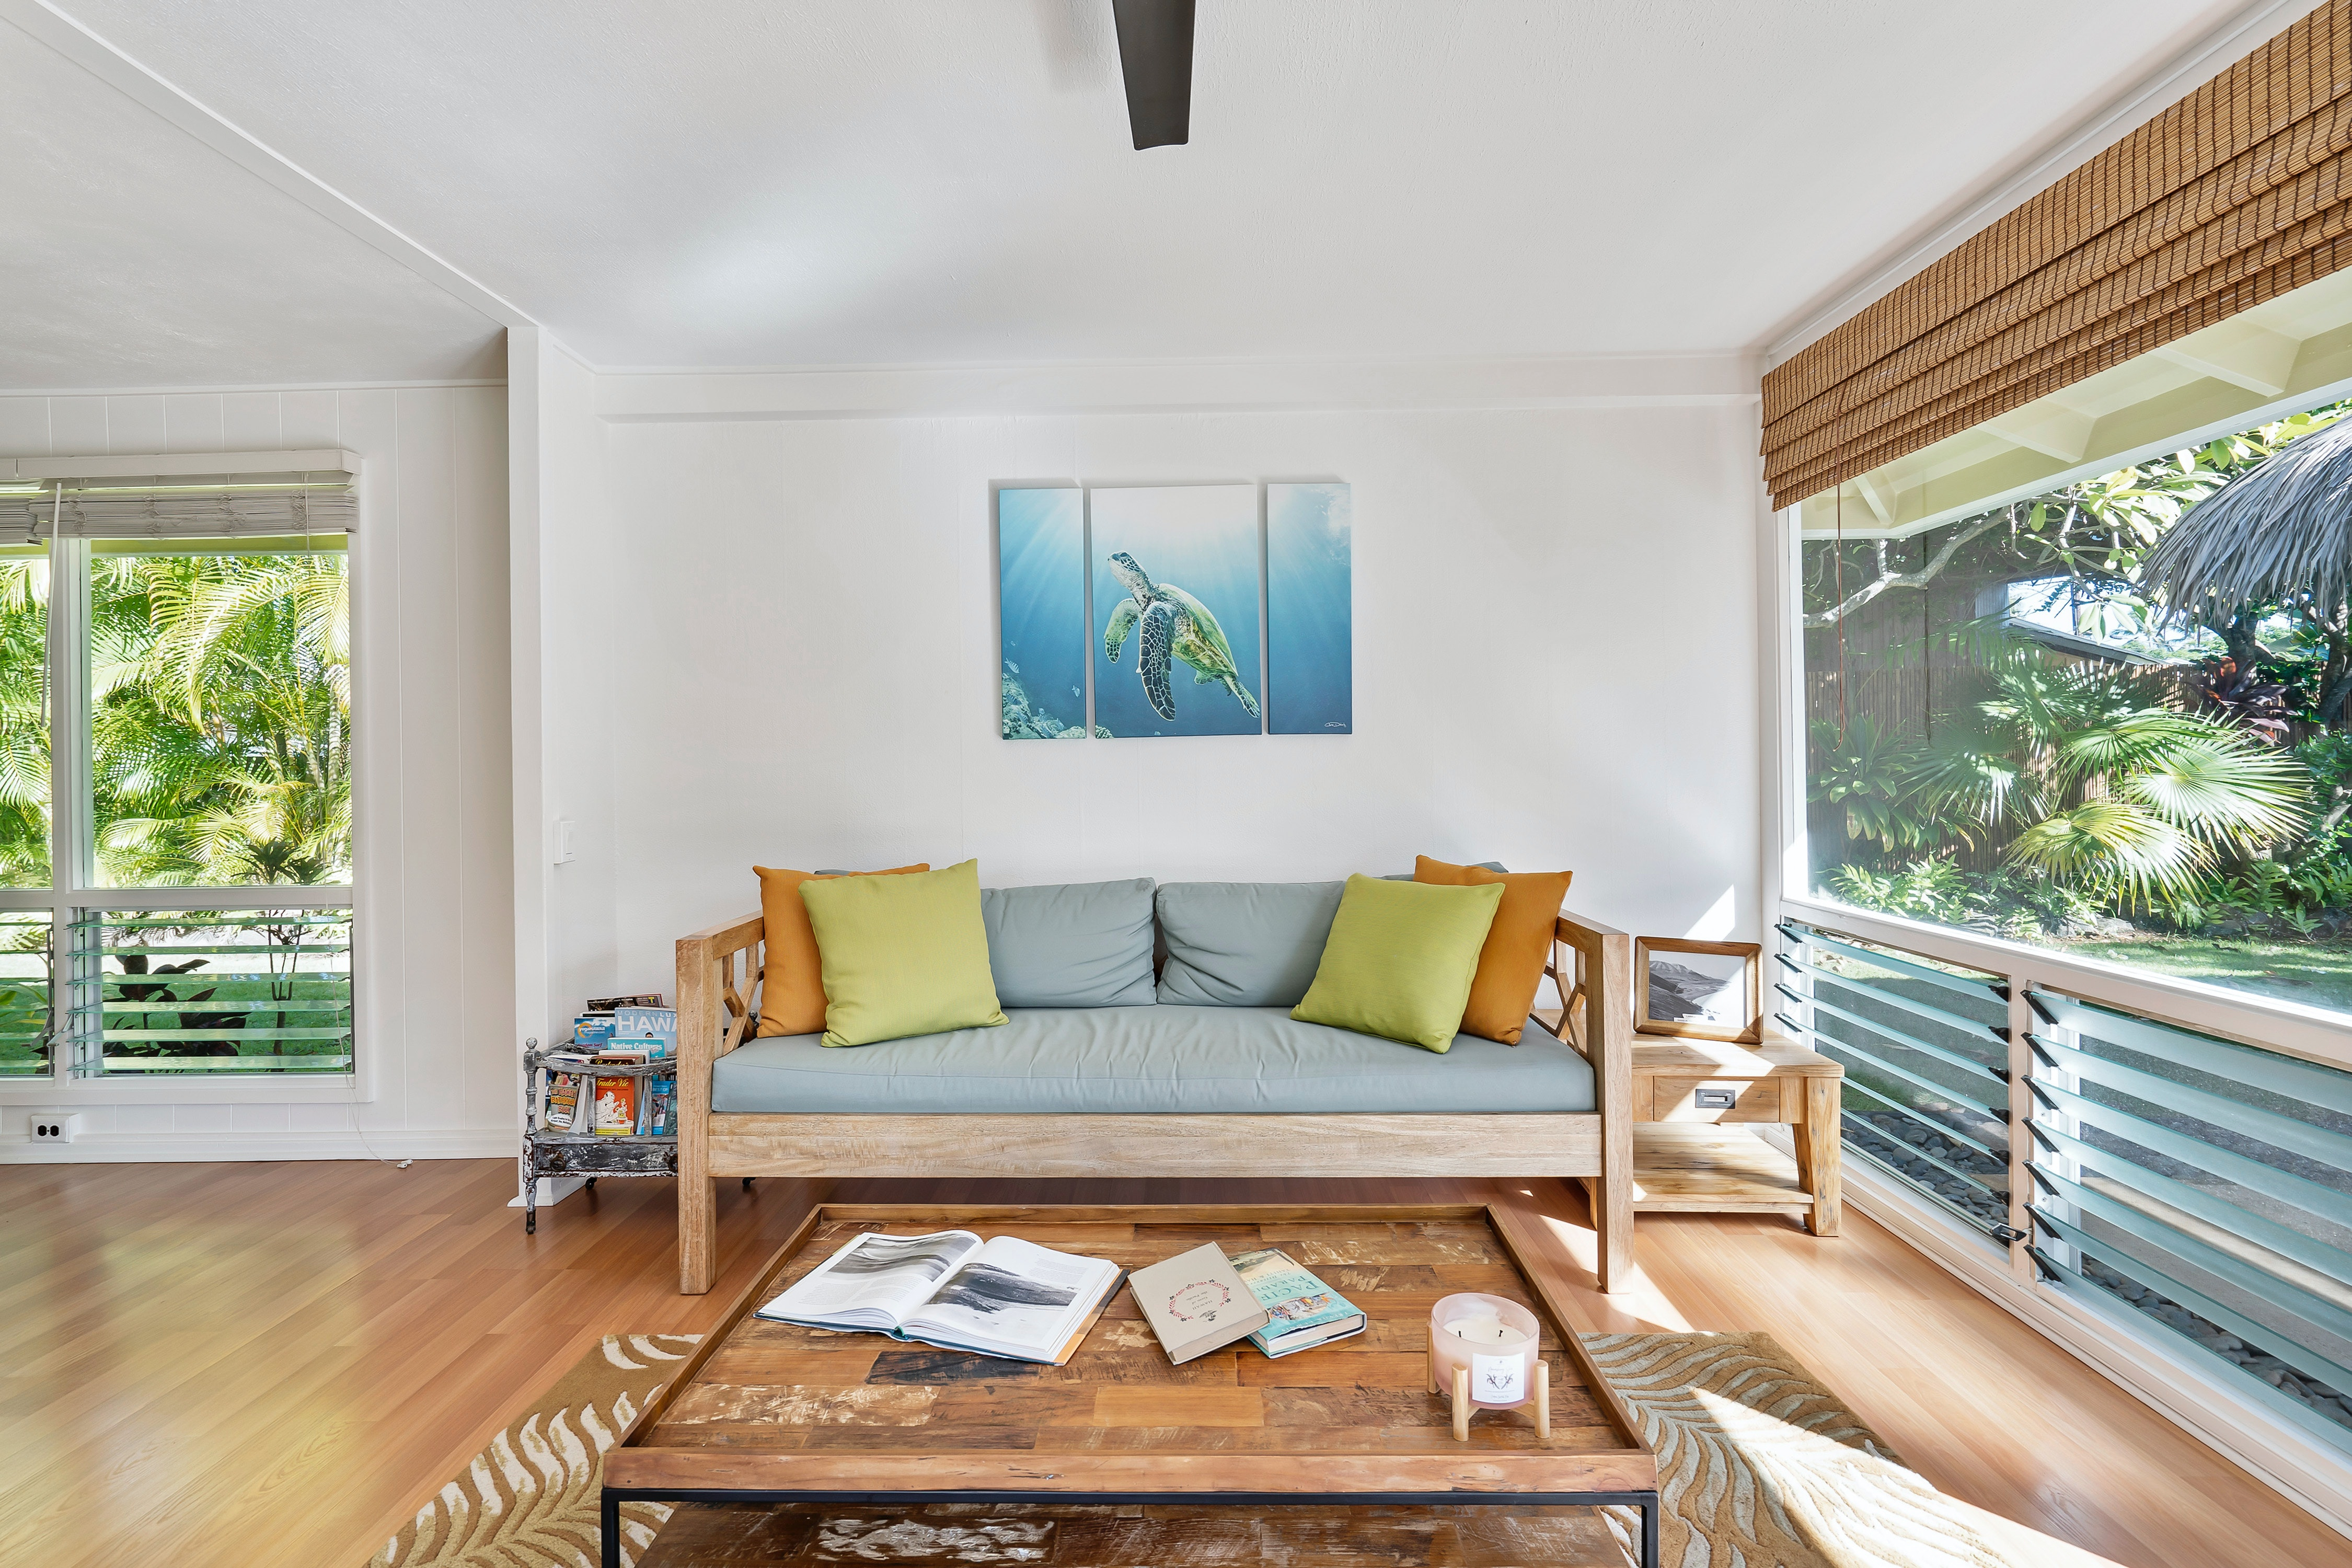 How Much Should I Charge for My Airbnb?